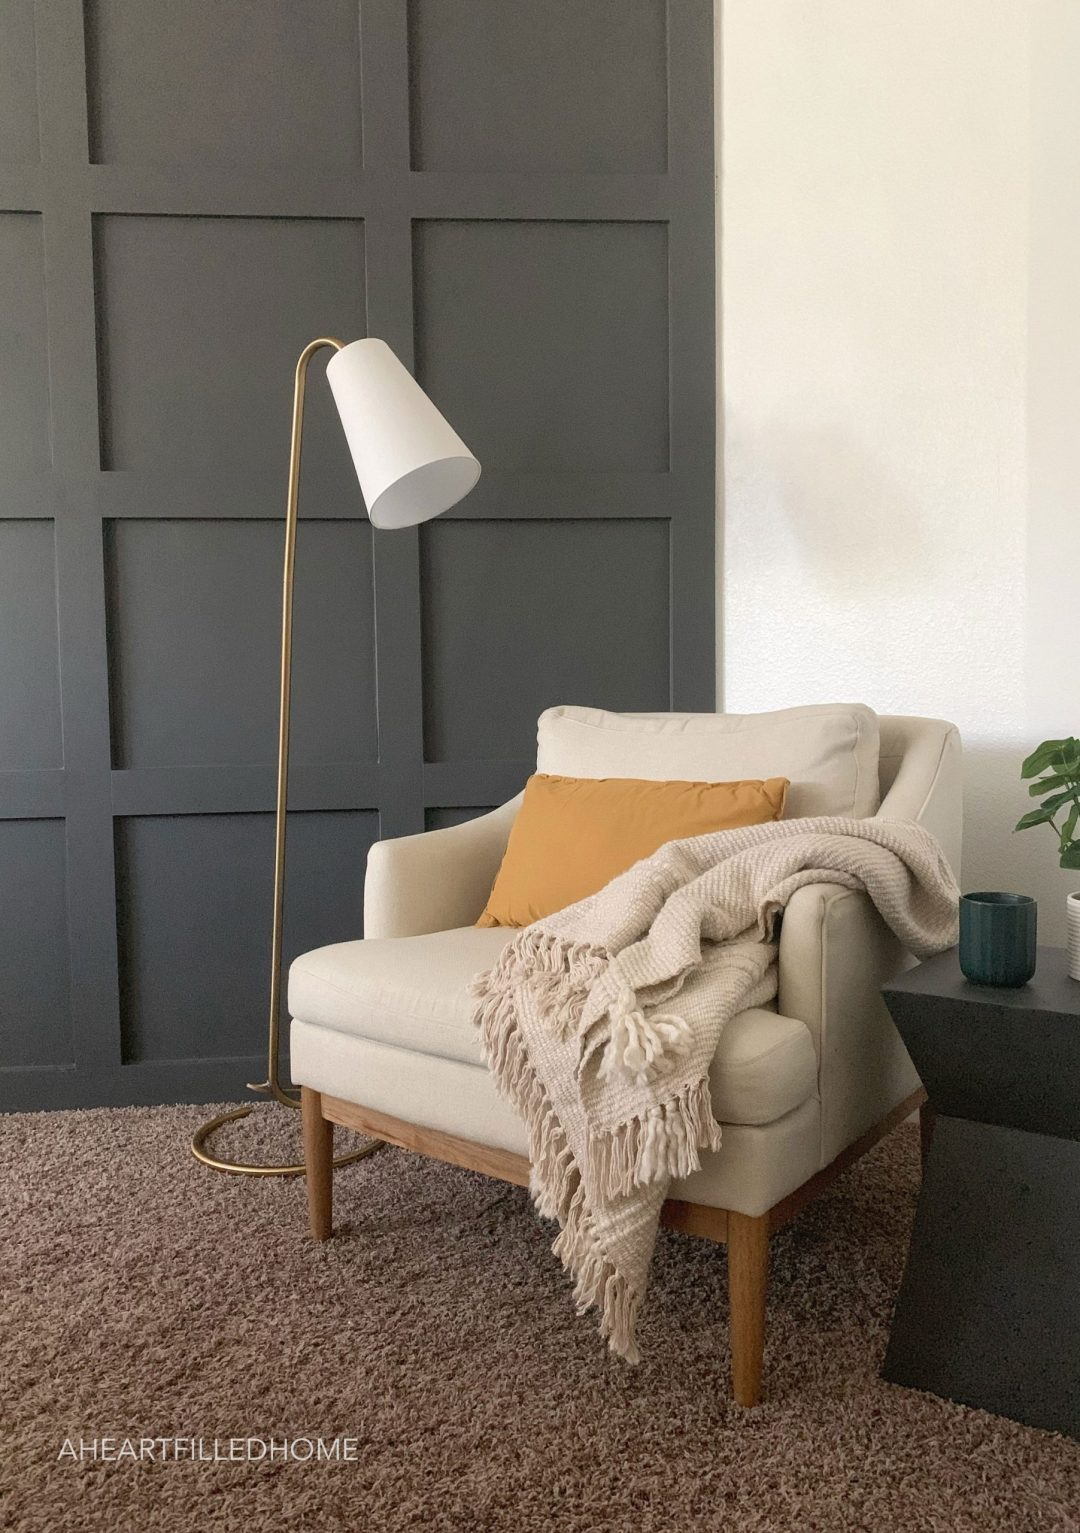 DIY Board and Batten Grid Wall with Hart Tools from A Heart Filled Home